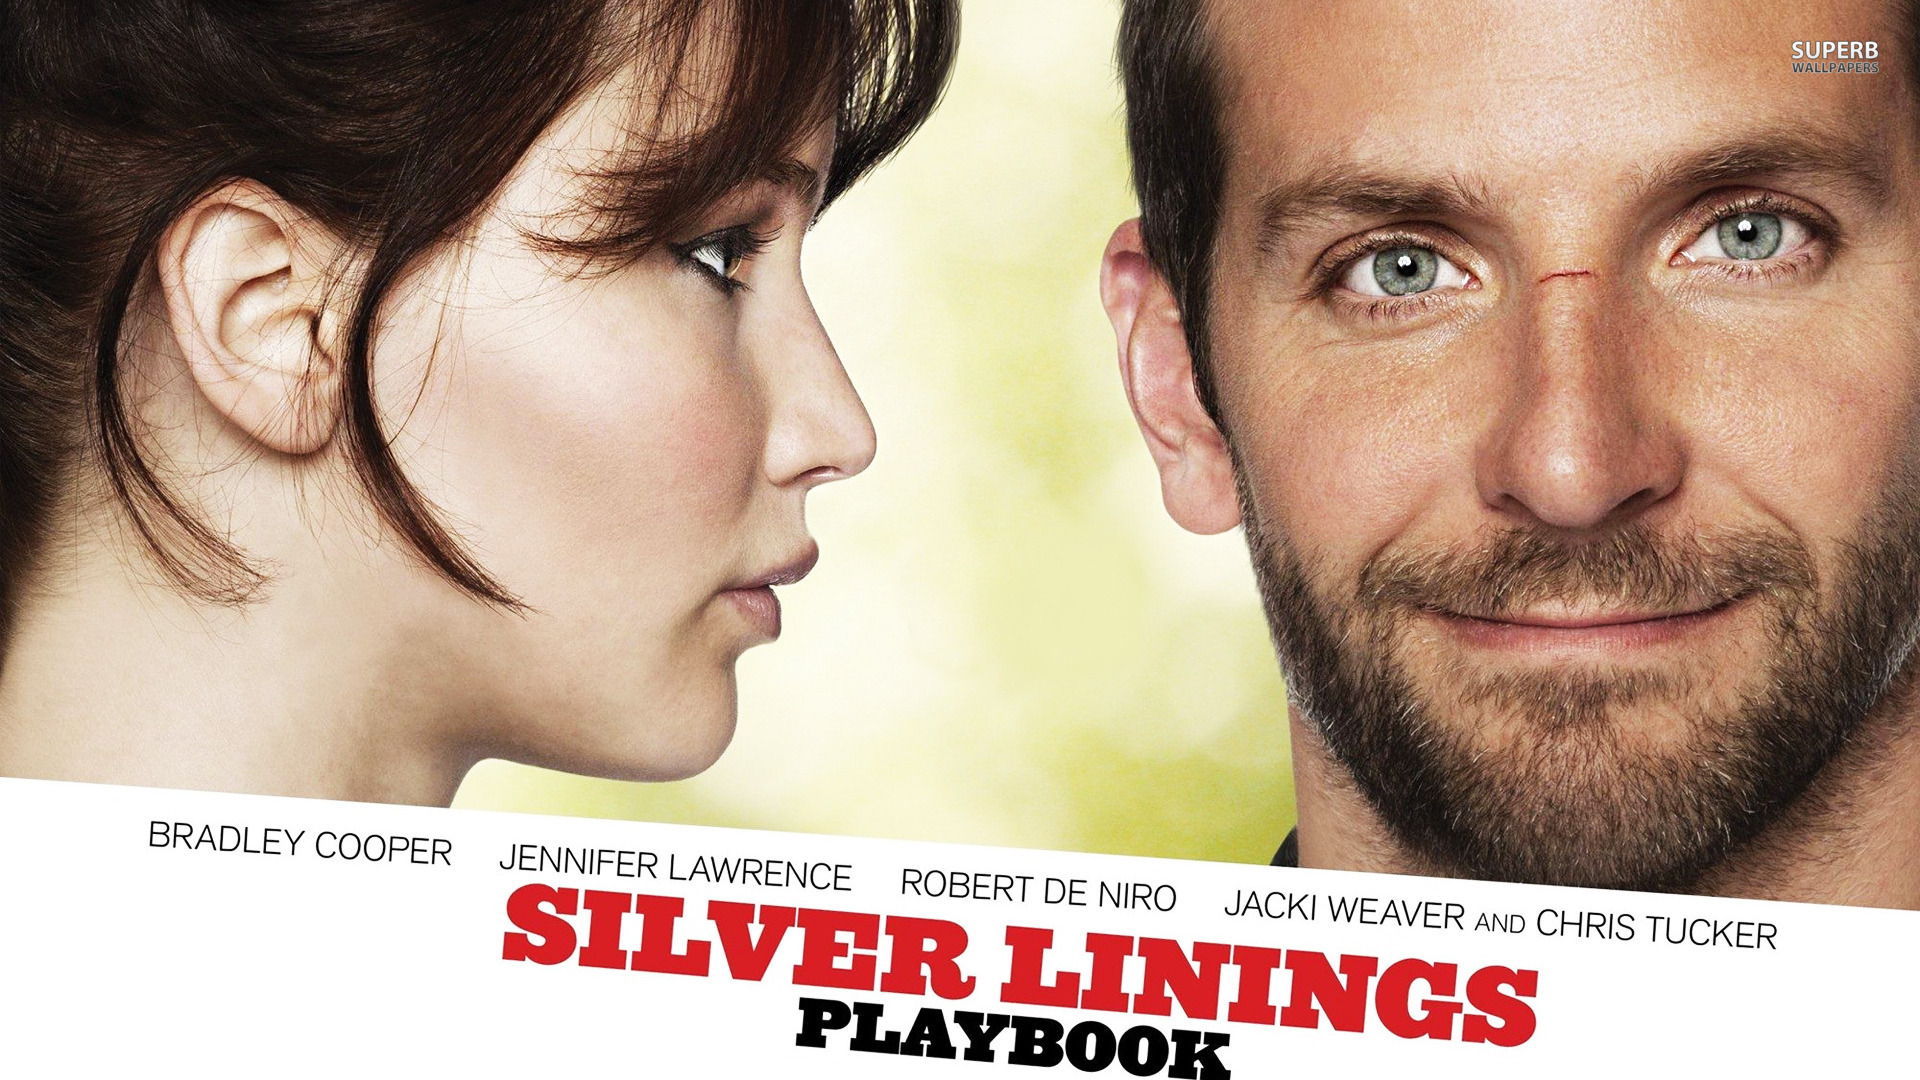 https://i2.wp.com/www.norwalklib.org/Images/FormCenter/Items/pat-and-tiffany-silver-linings-playbook-17389-1920x1080%5B1%5D.jpg